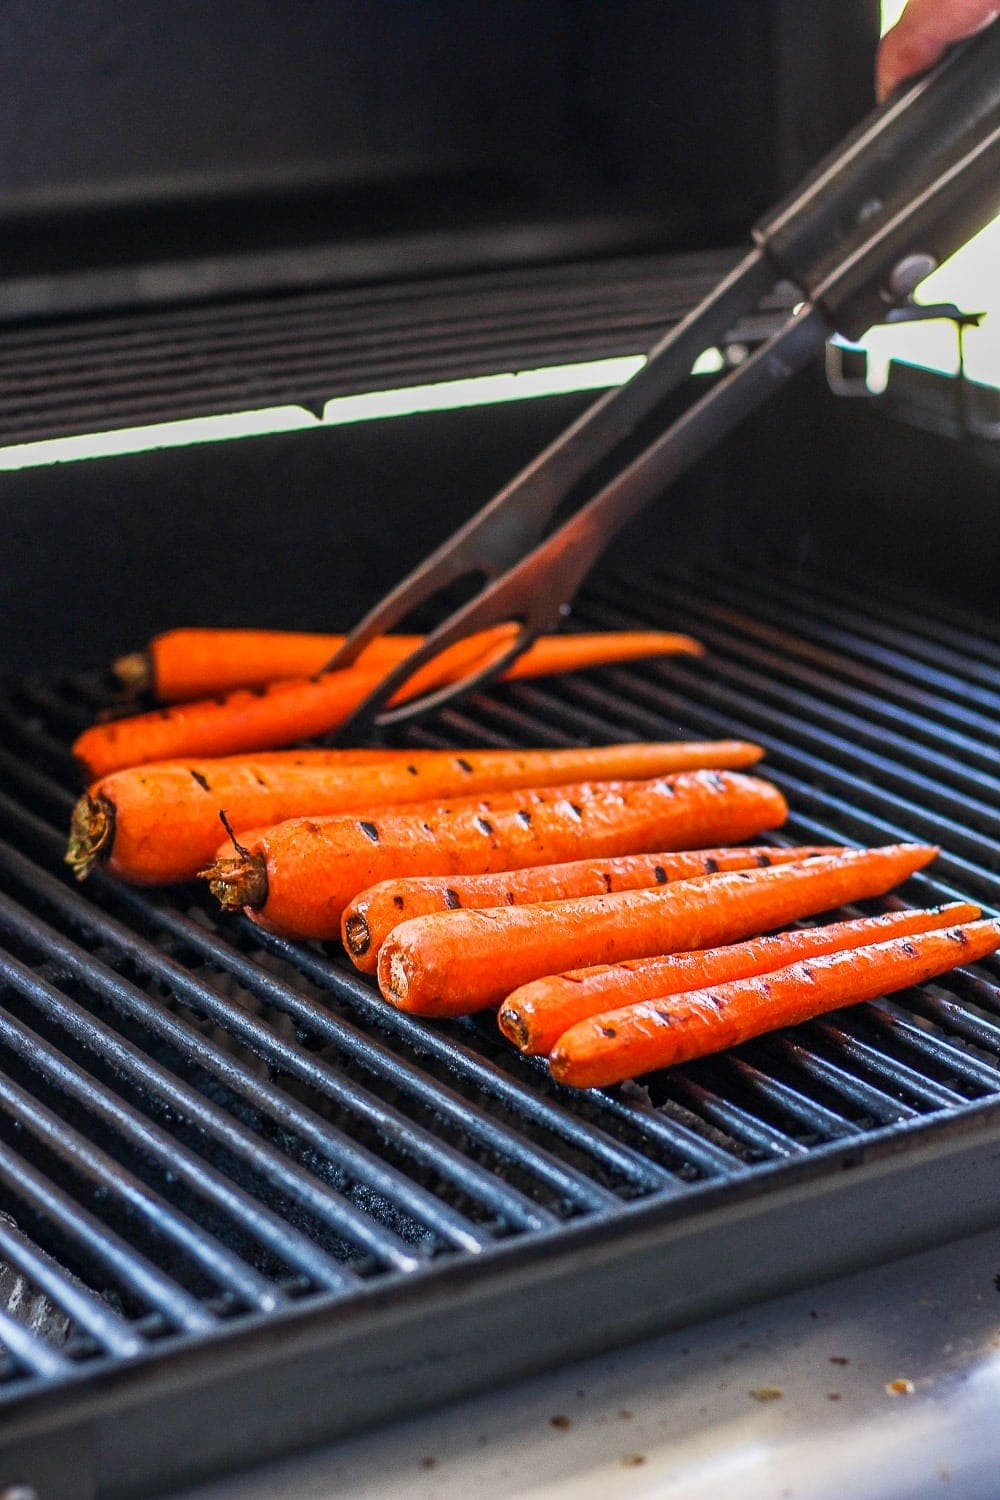 Carrots roasting on the grill.